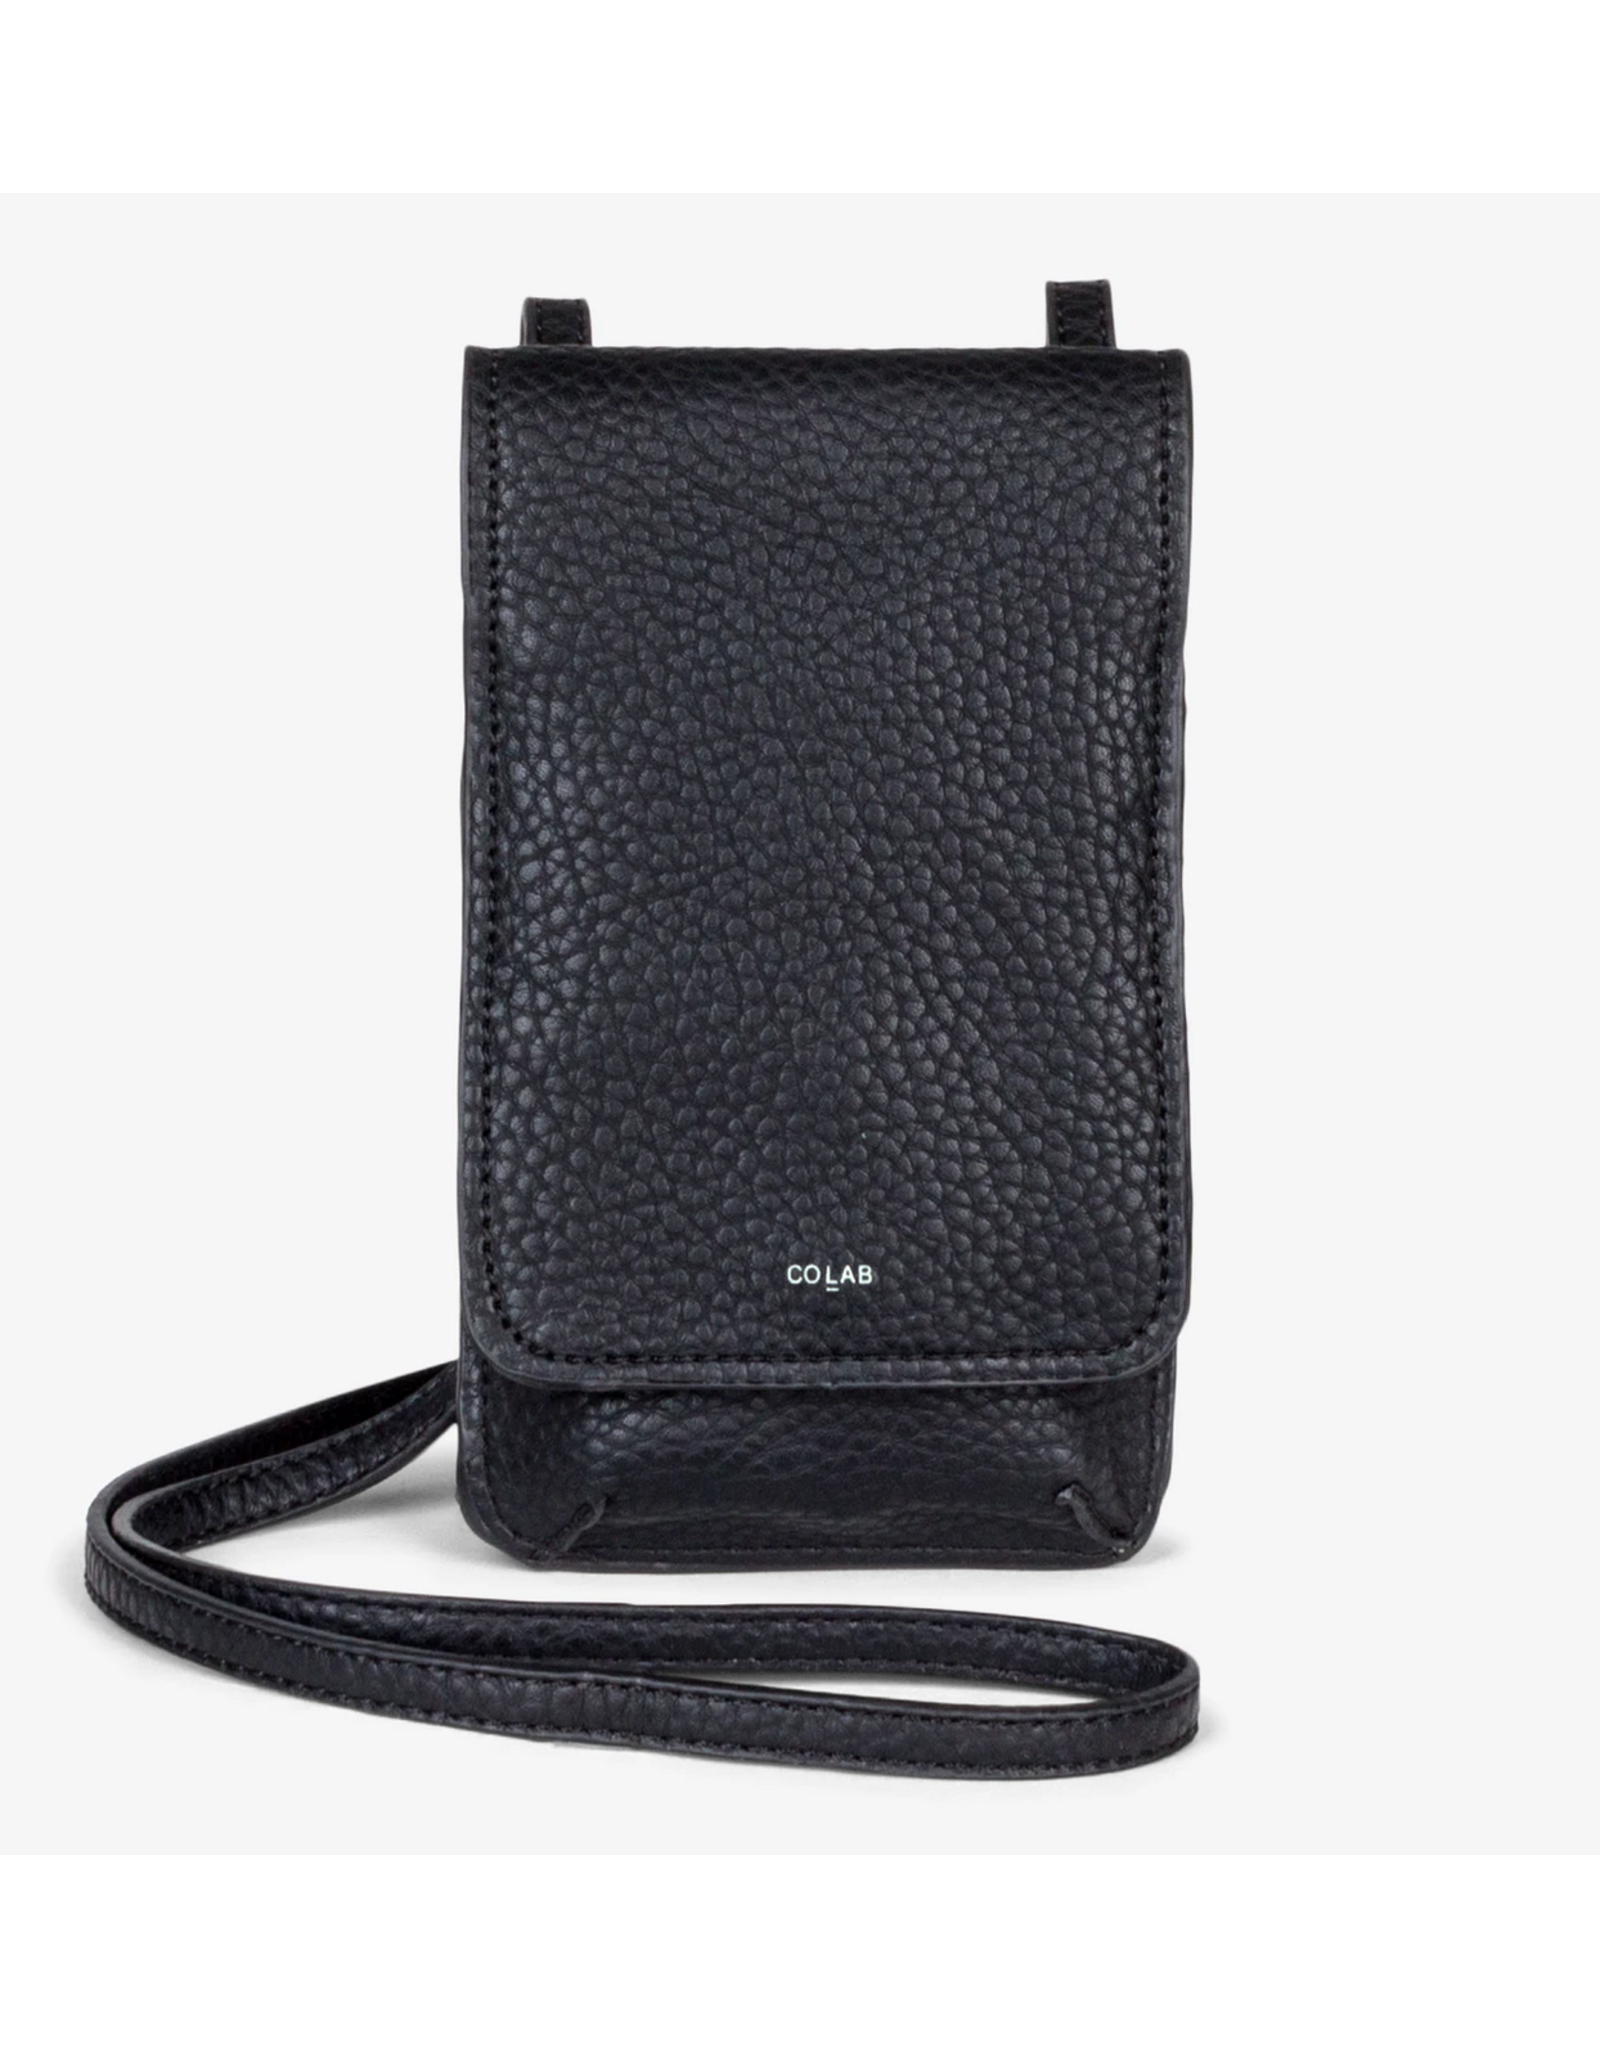 Co-Lab Faye Tech Crossbody